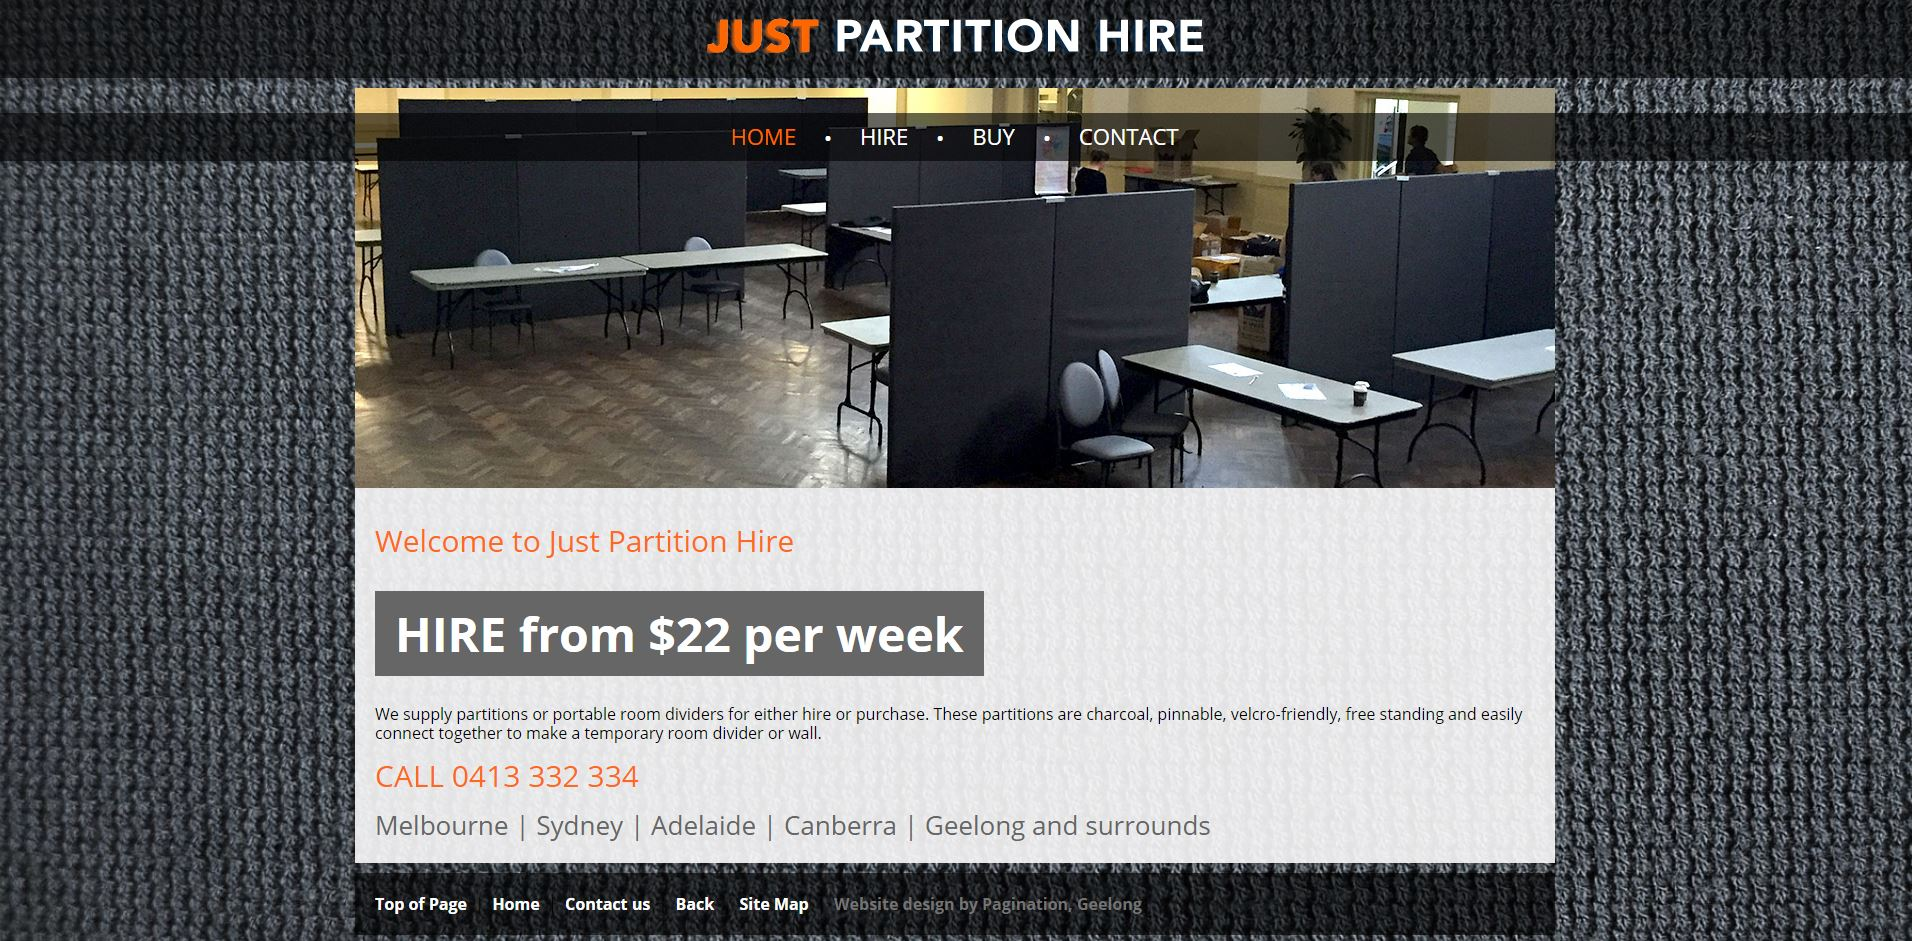 justpartitionhire.com.au